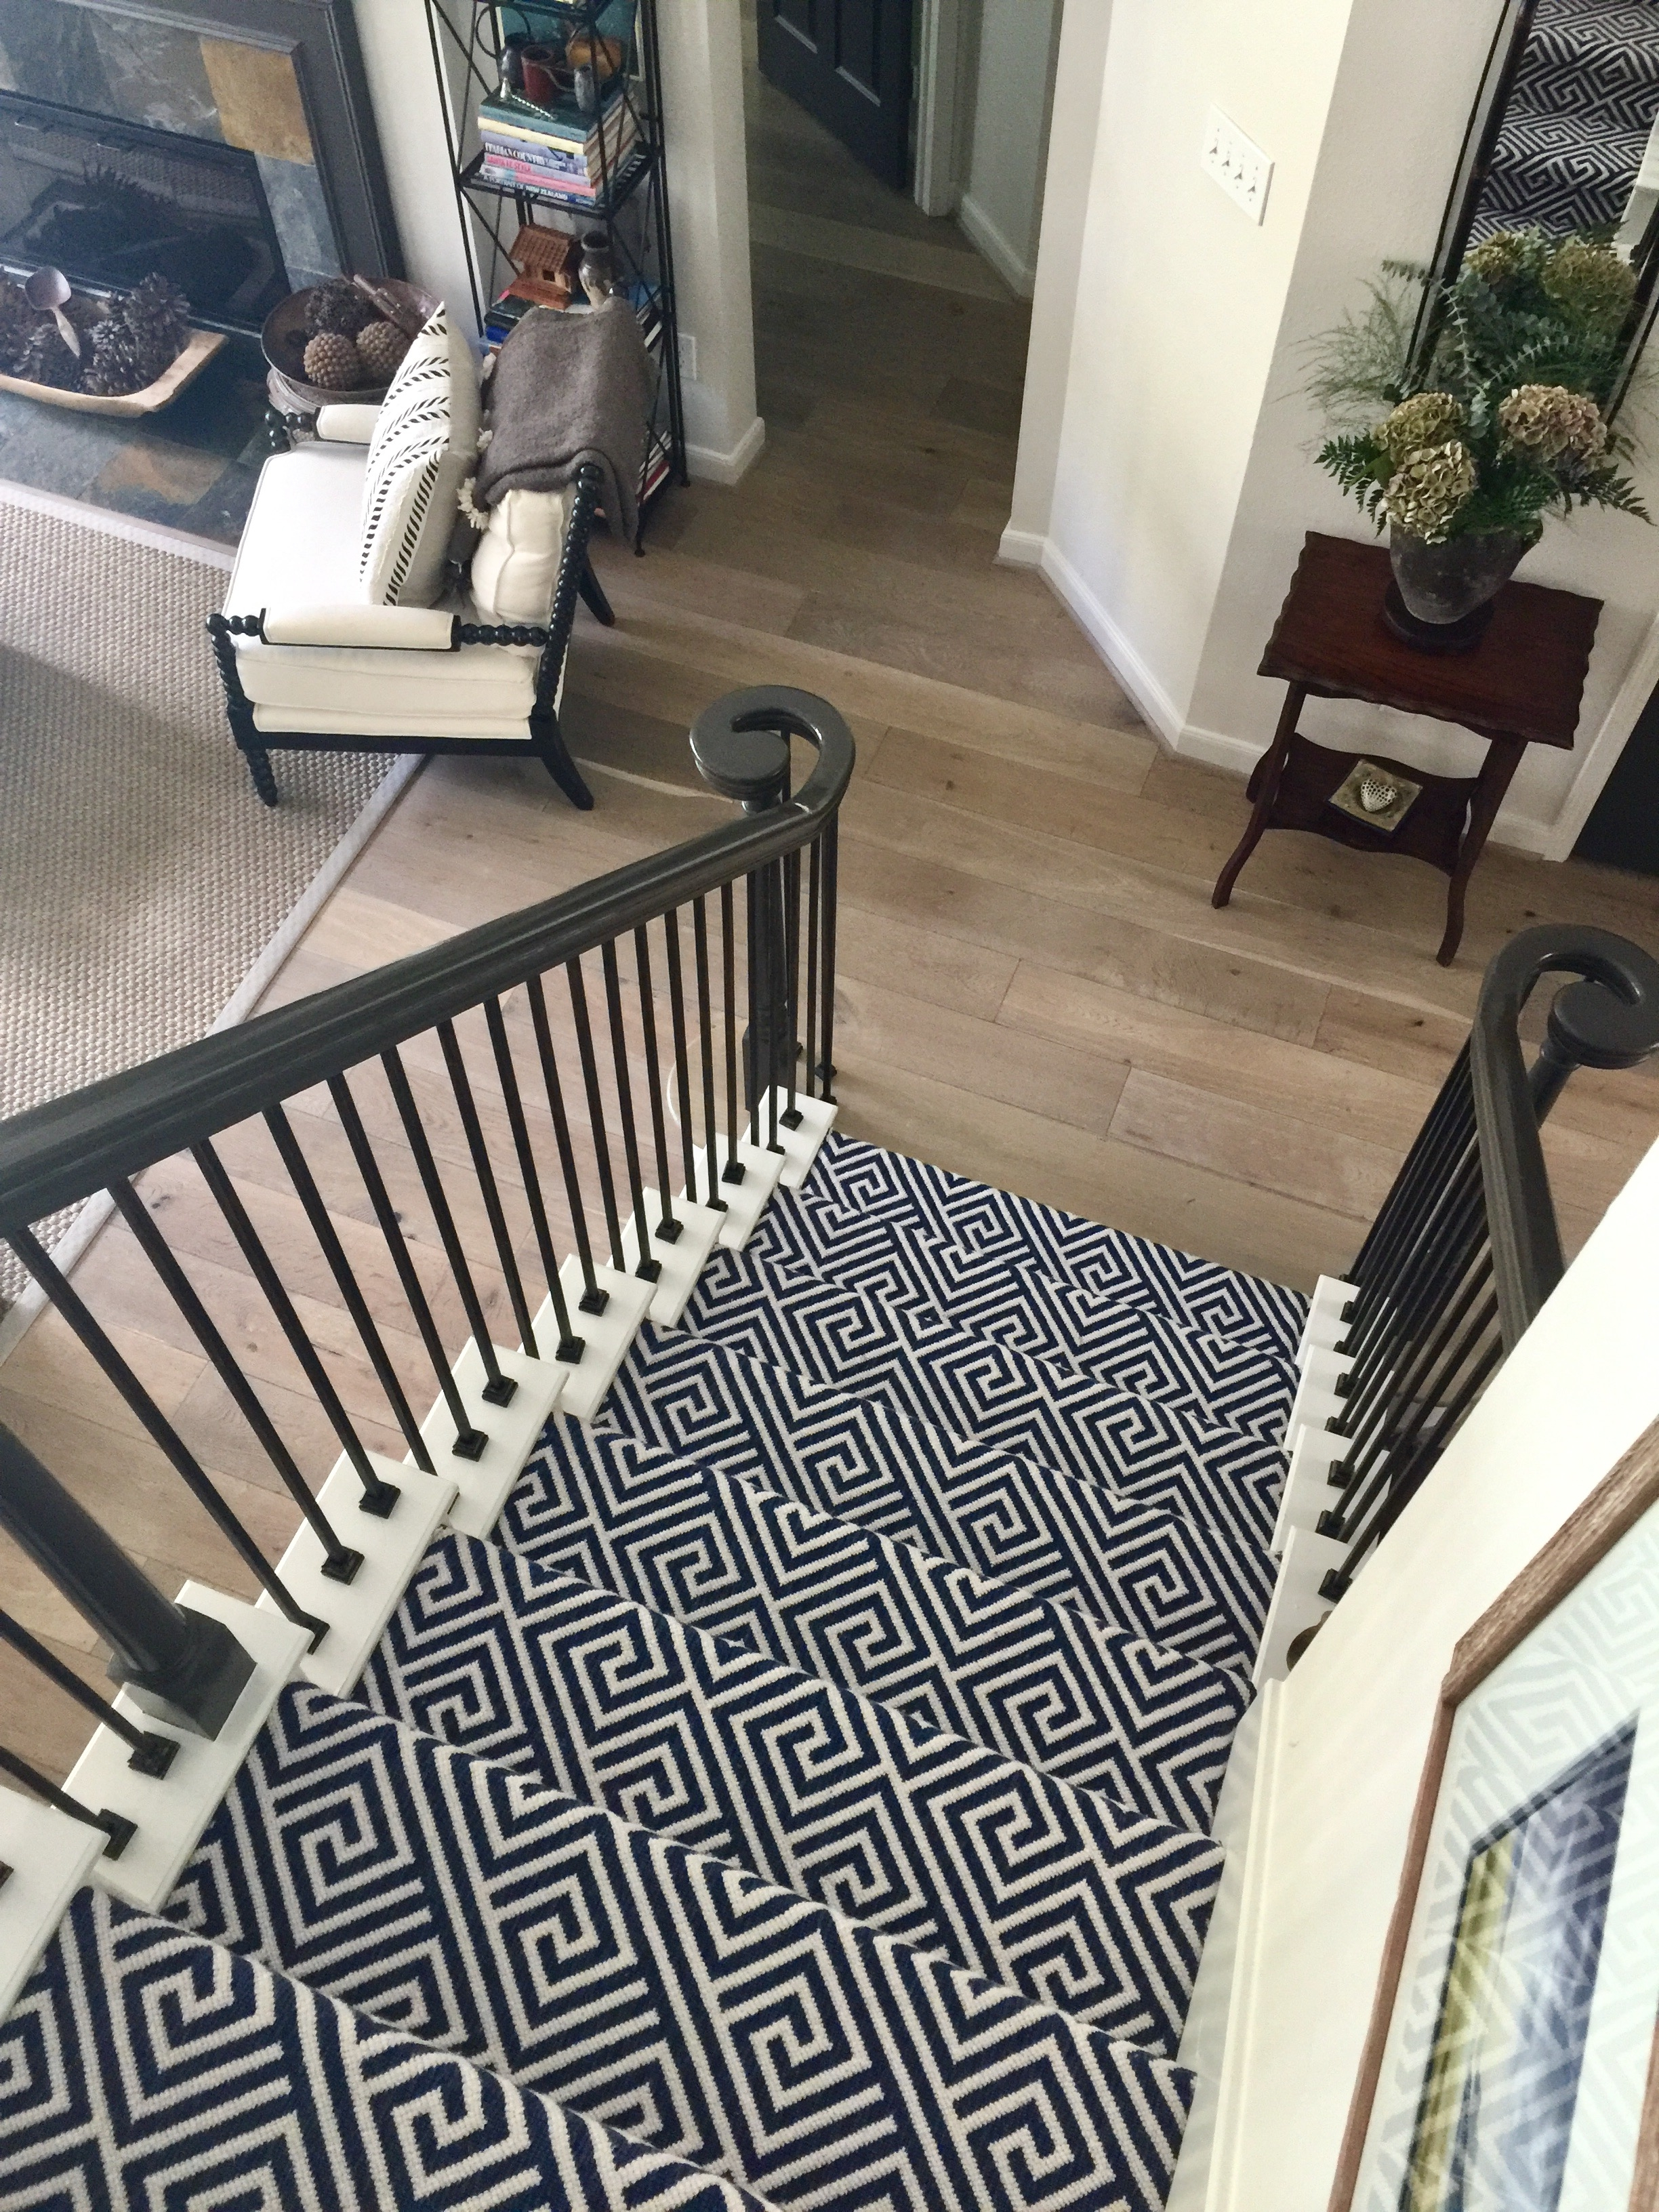 Should I Carpet My Stairs With The Same Carpet I Use Upstairs | Stairs With Carpet In The Middle | Runner Corner | Laminate | Contemporary | Run On Stair | Marble